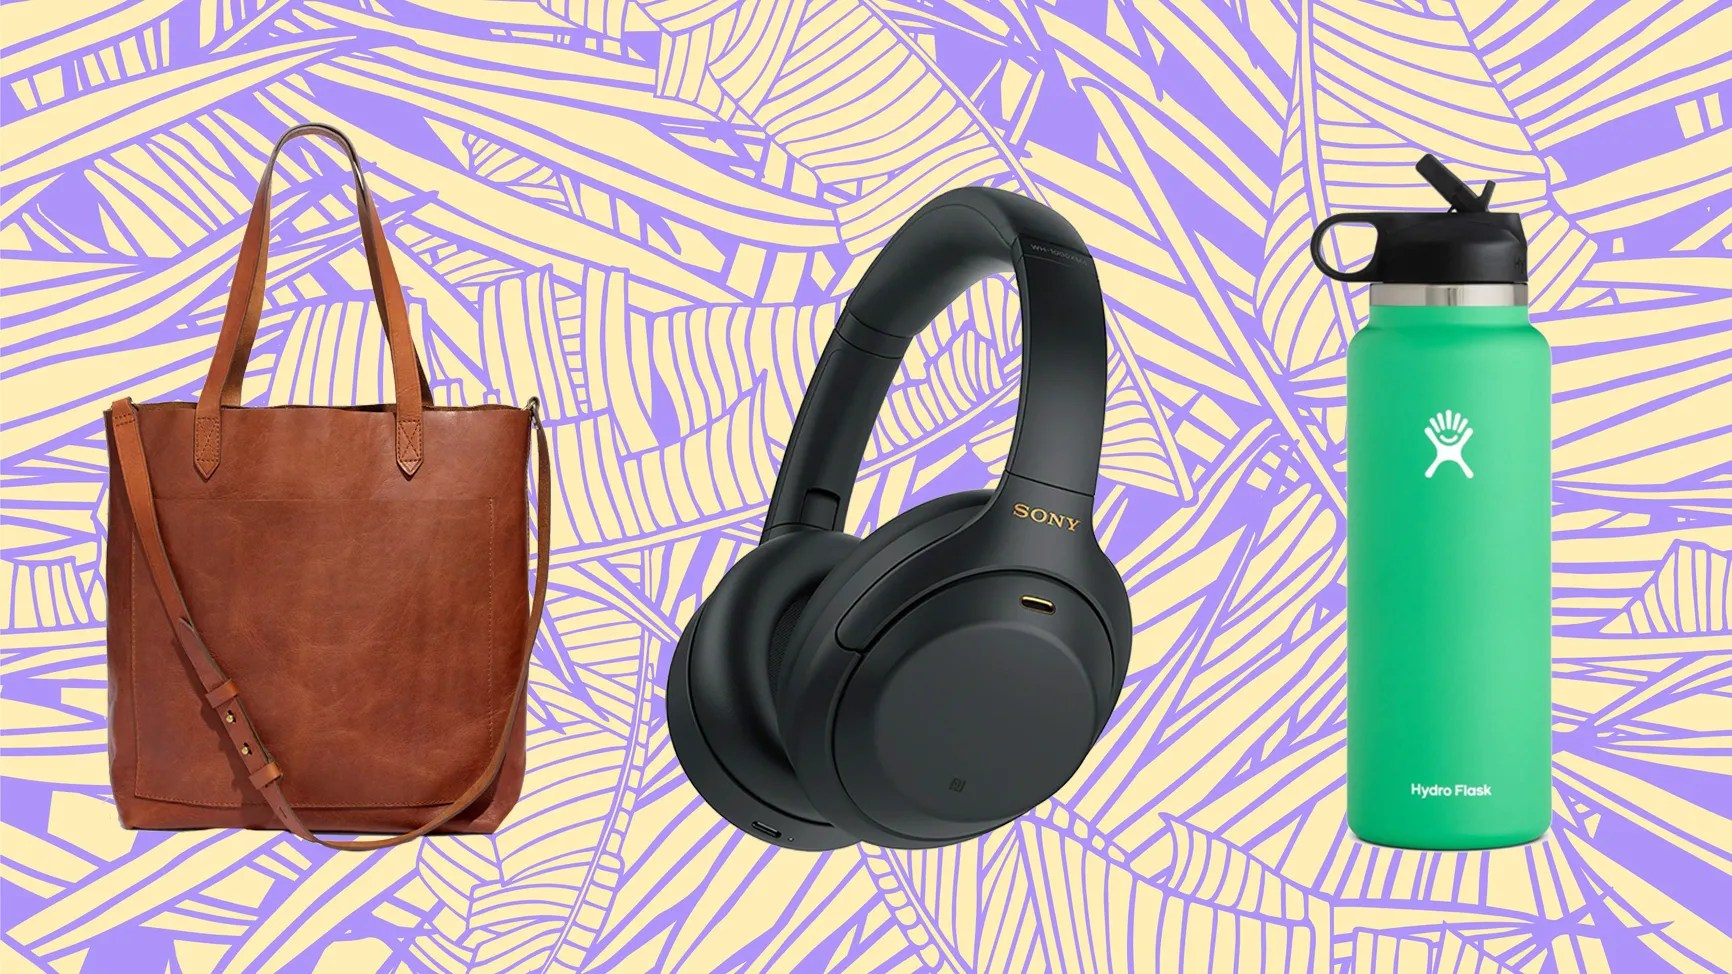 30 Best 30th Birthday Gifts Of 2021